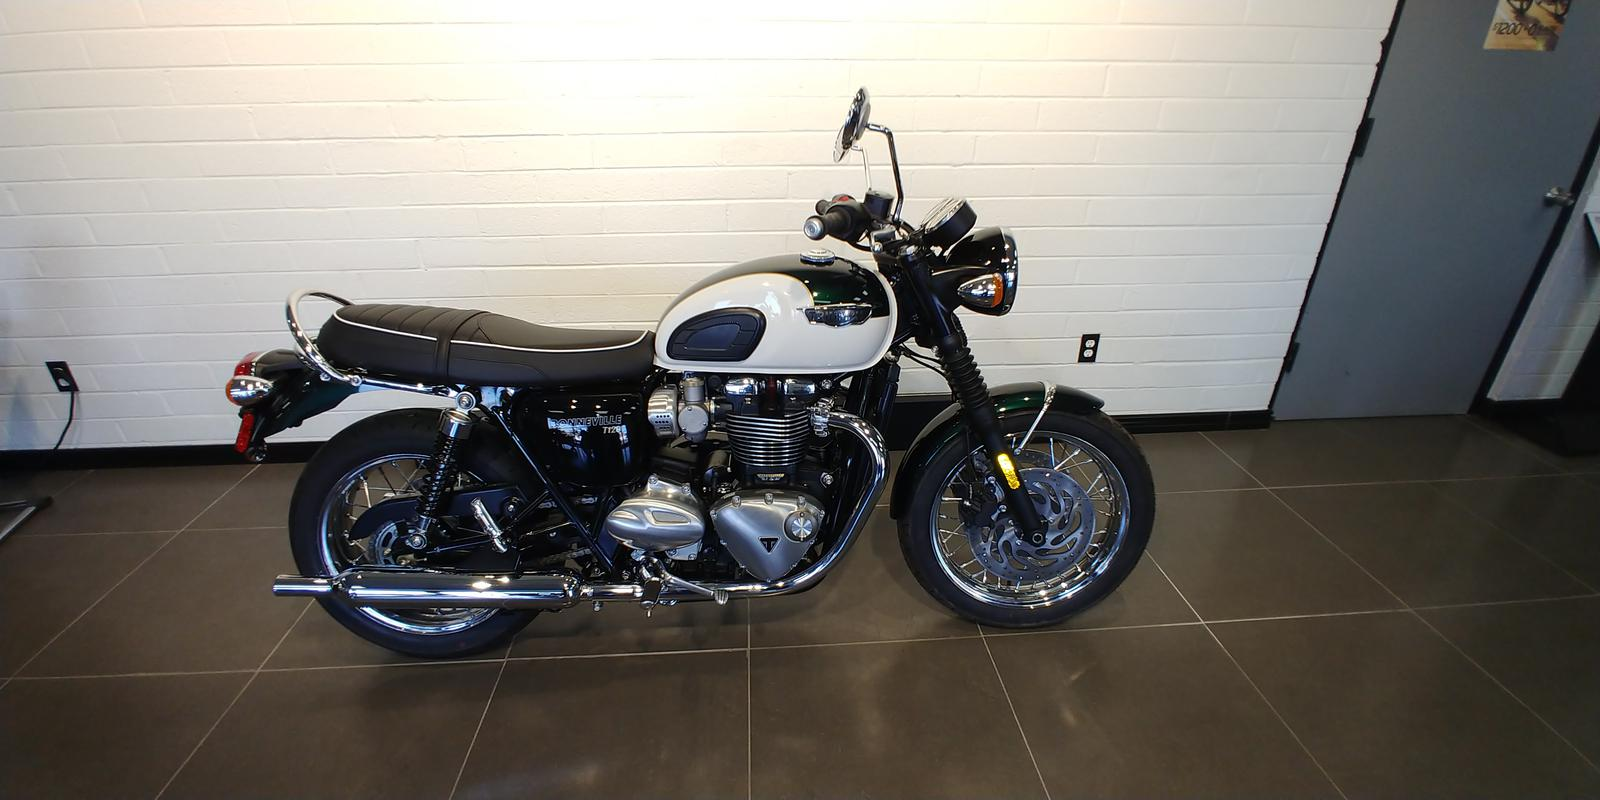 2019 Triumph Bonneville T120 For Sale In Mesa Az Phoenix Triumph